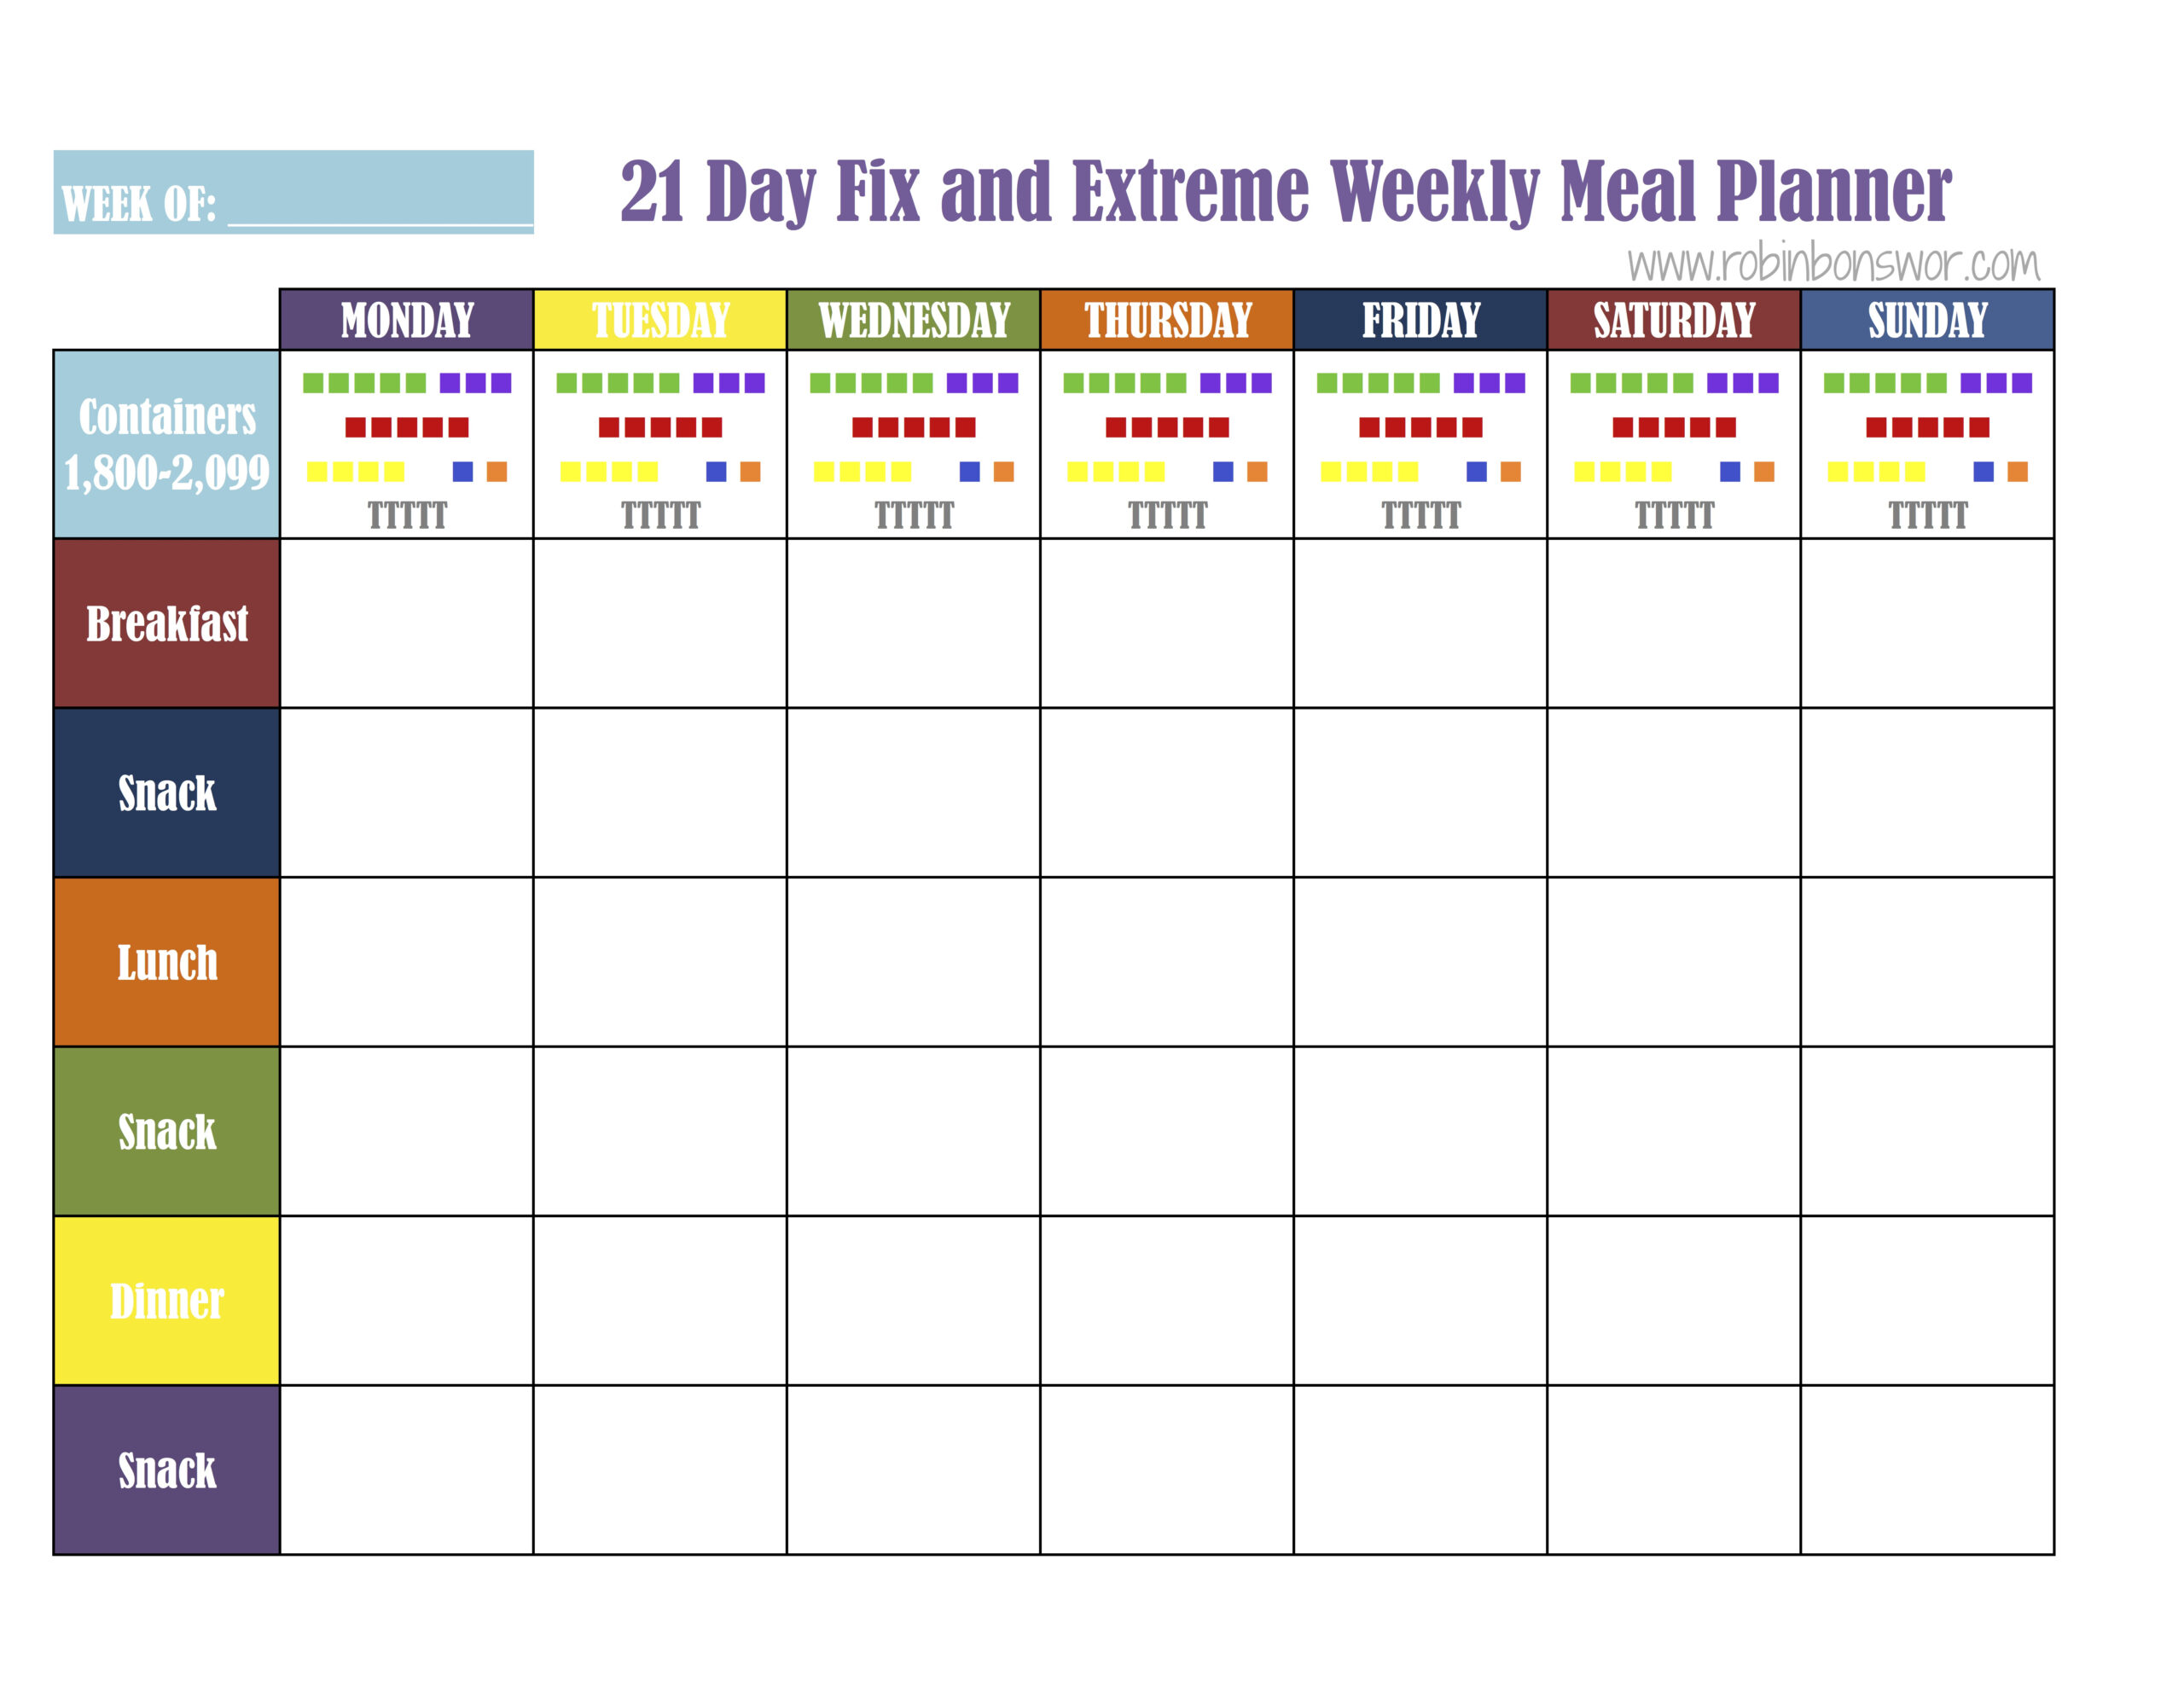 21 Day Fix Meal Plan Tools   Get Fit. Lose Weight. Feel